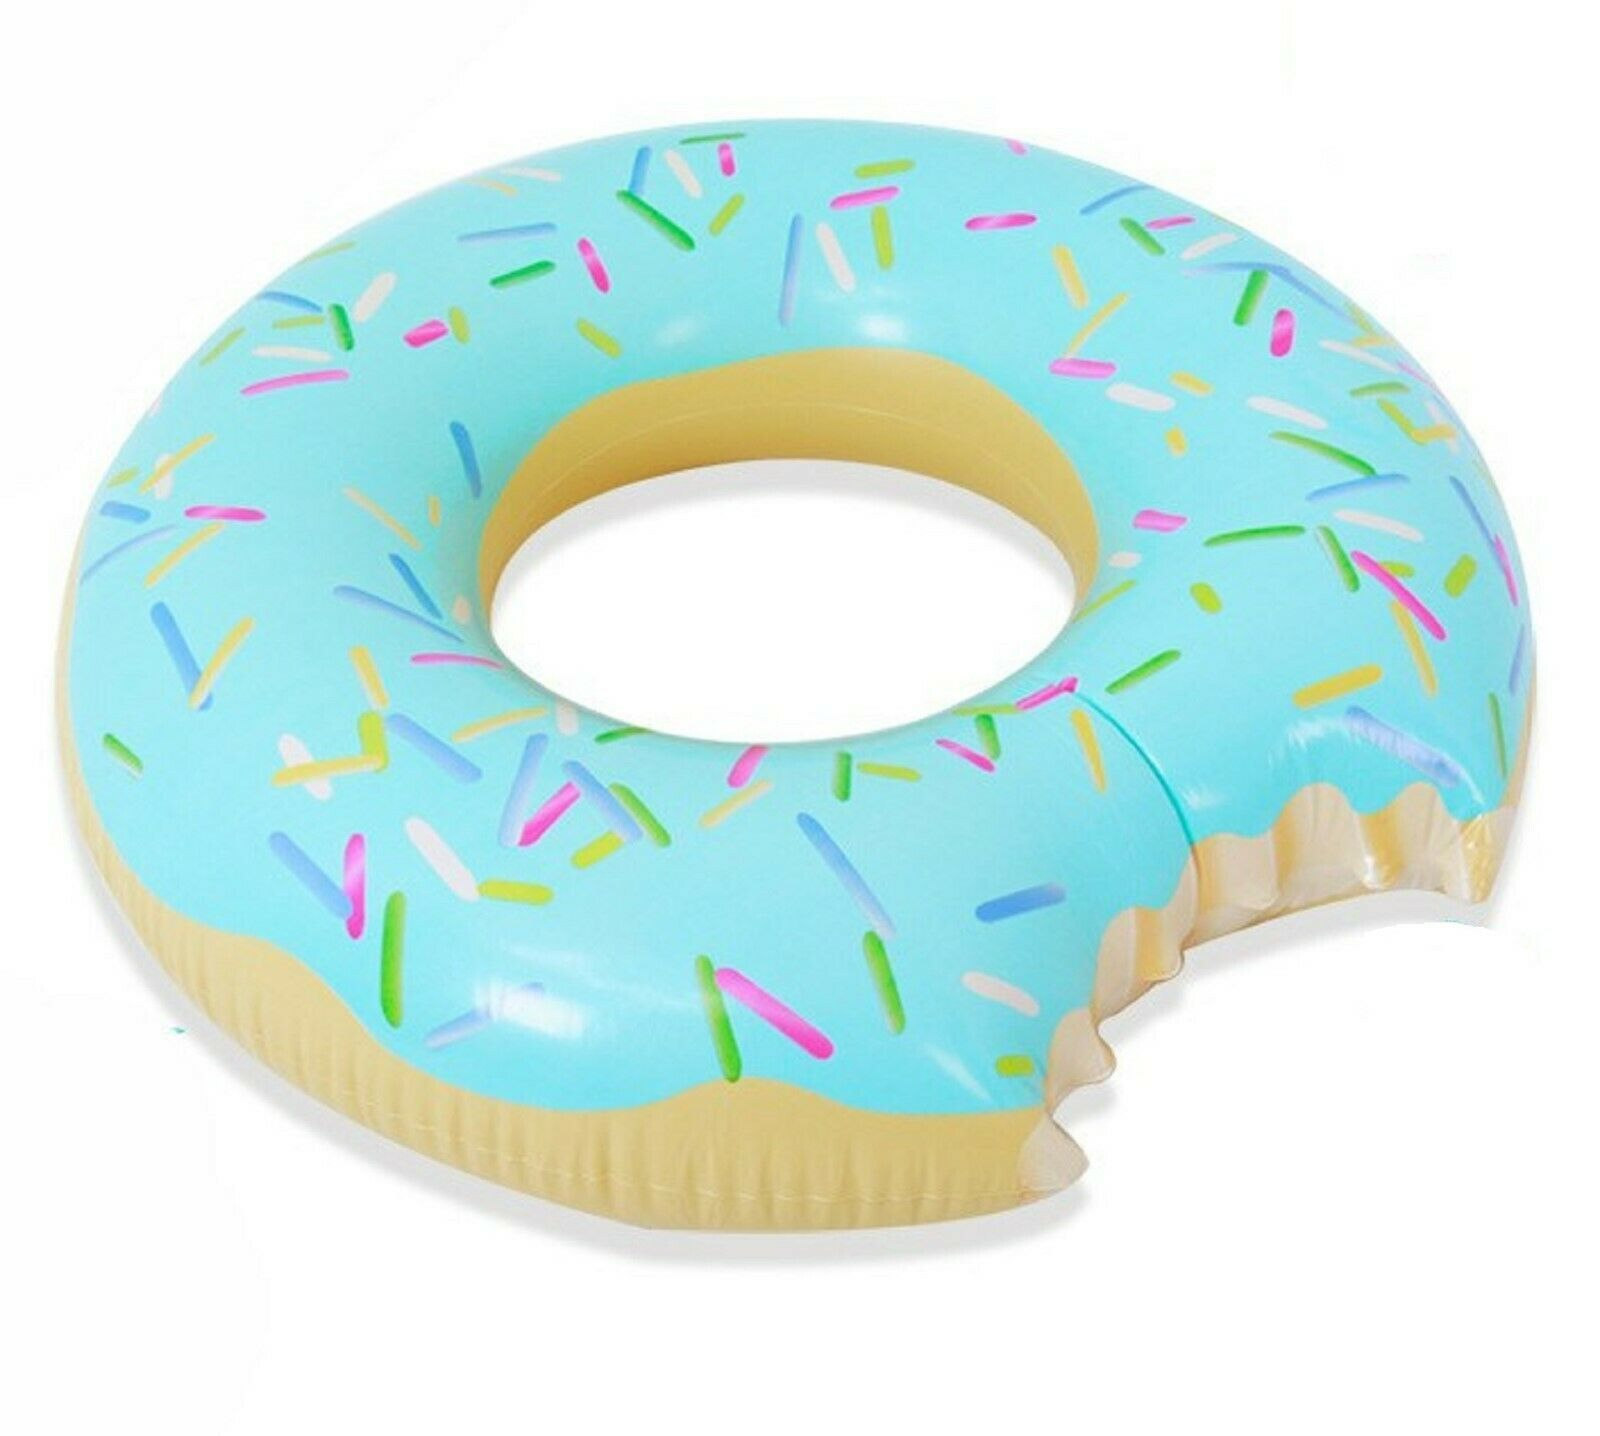 Swim About Large Donut Swim Ring Tube Pool Inflatable Floats for Adults (Mint)